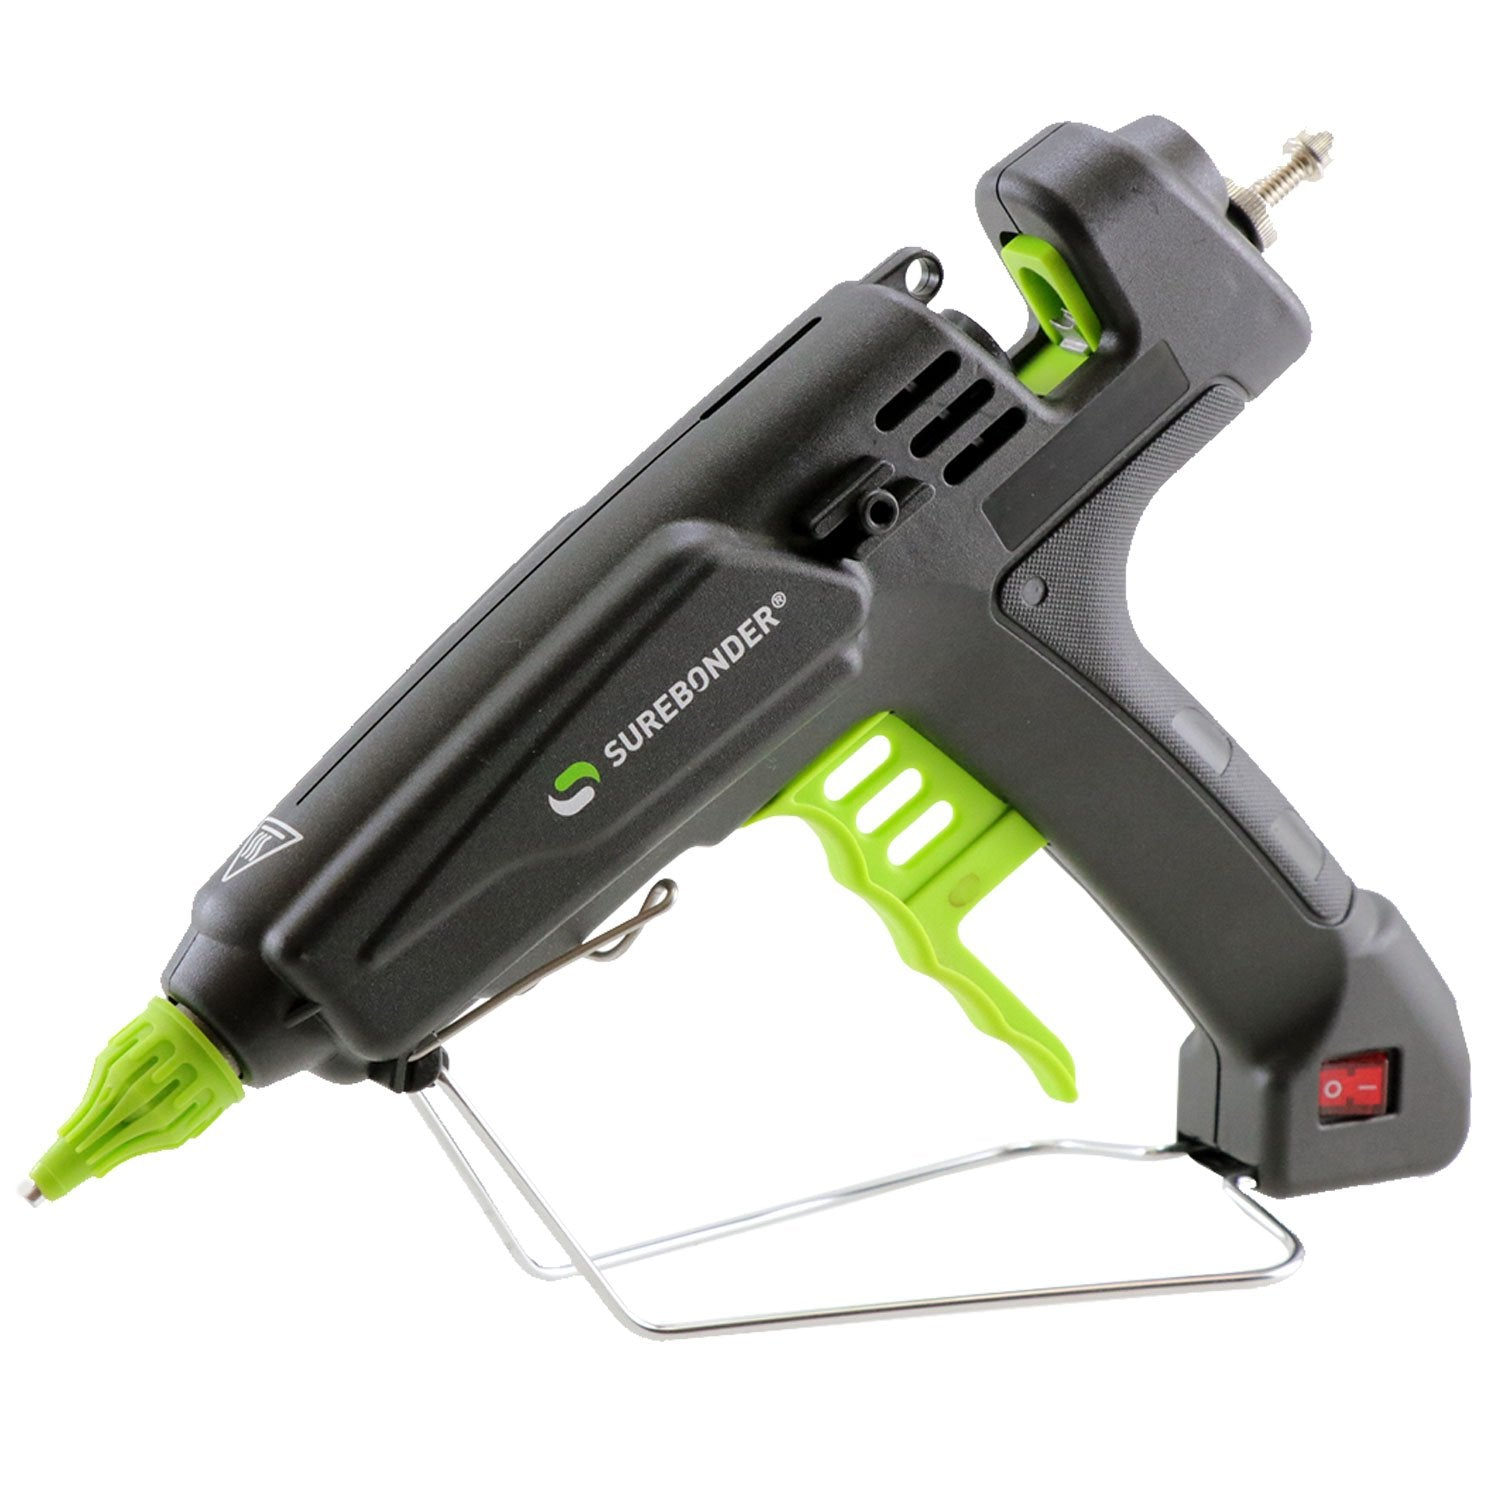 Surebonder Heavy Duty Hot Melt Glue Gun - 180 Watts